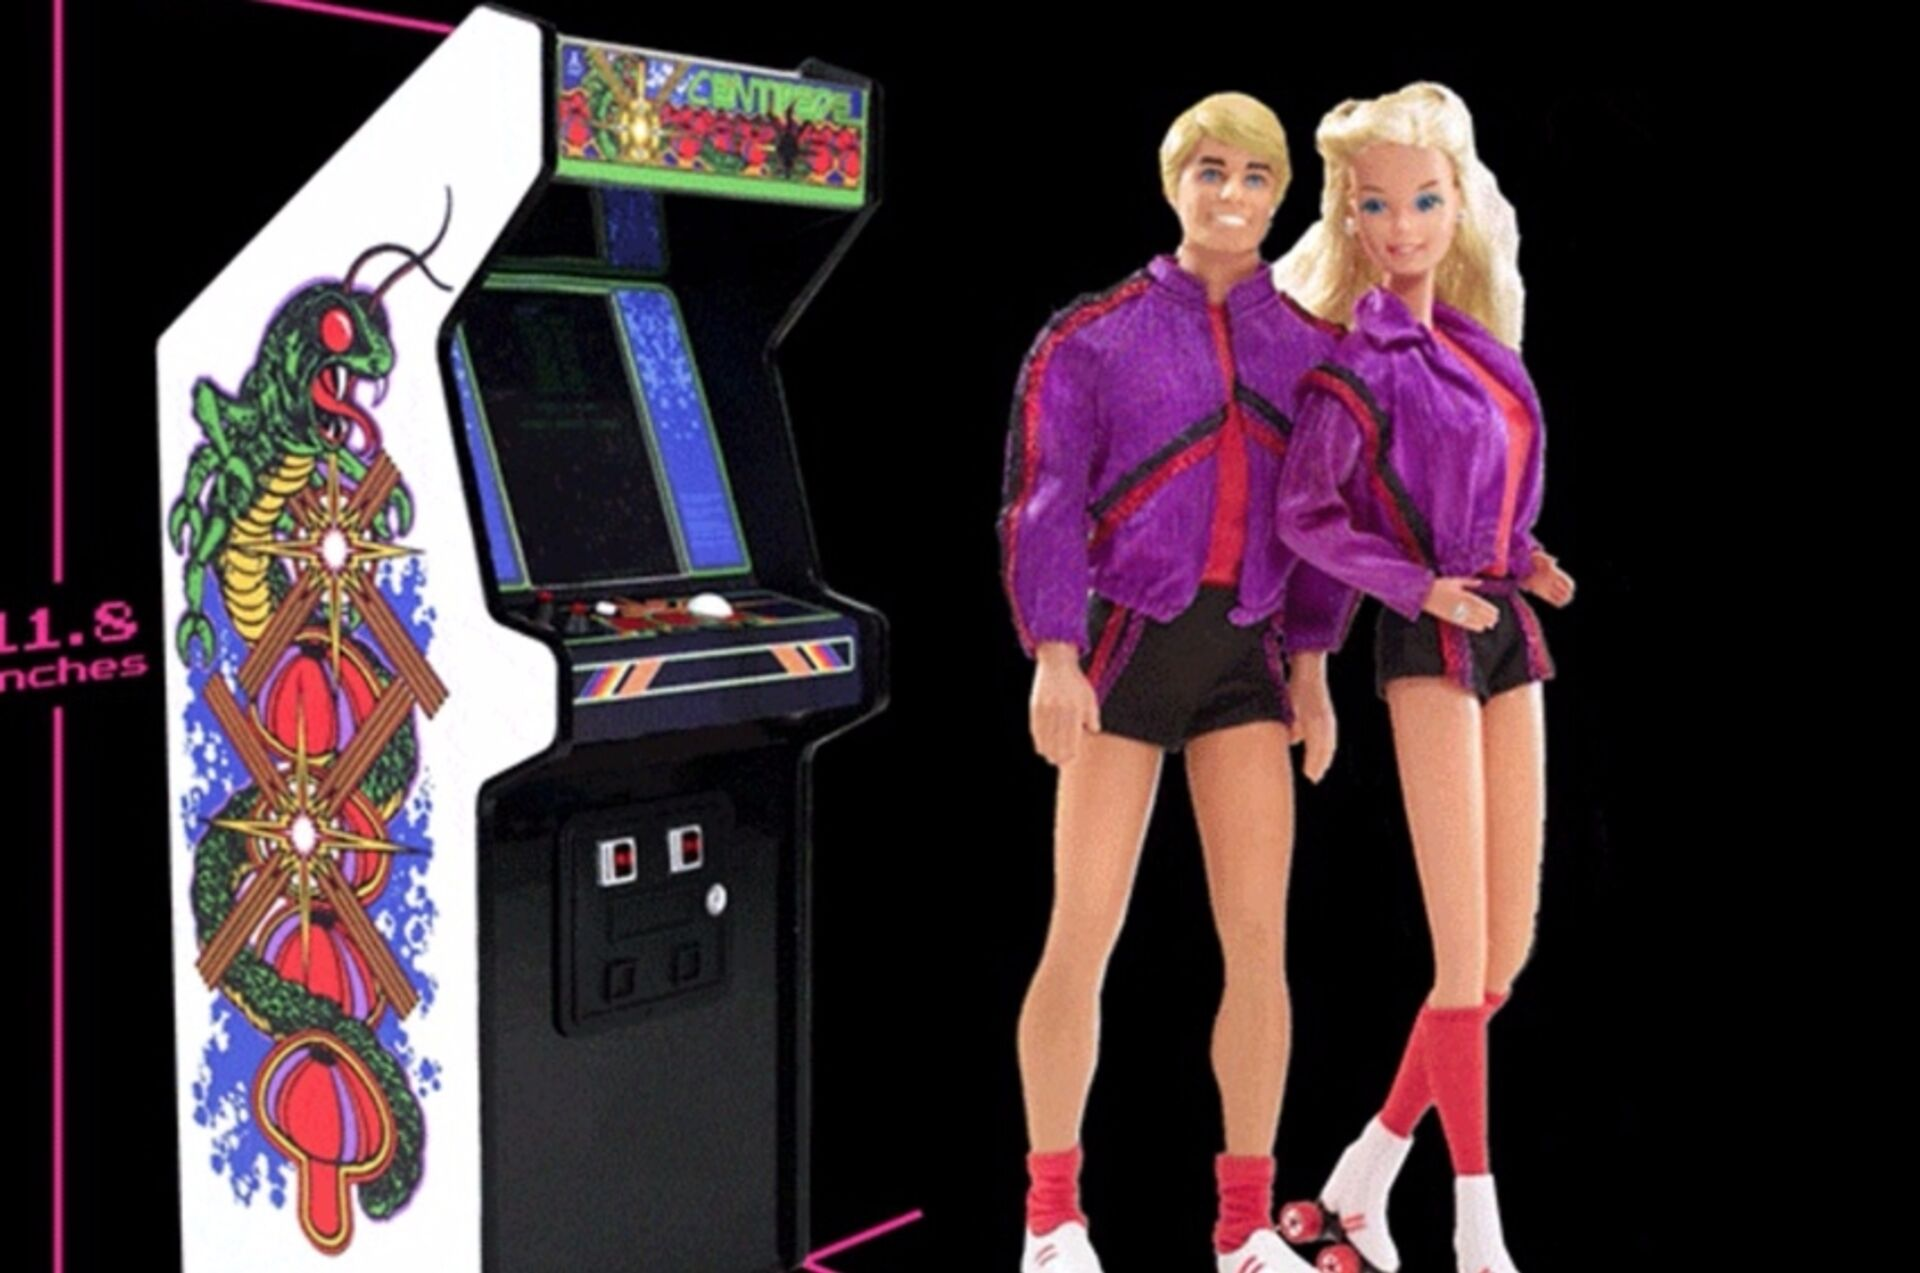 There's a range of miniature, officially licensed arcade